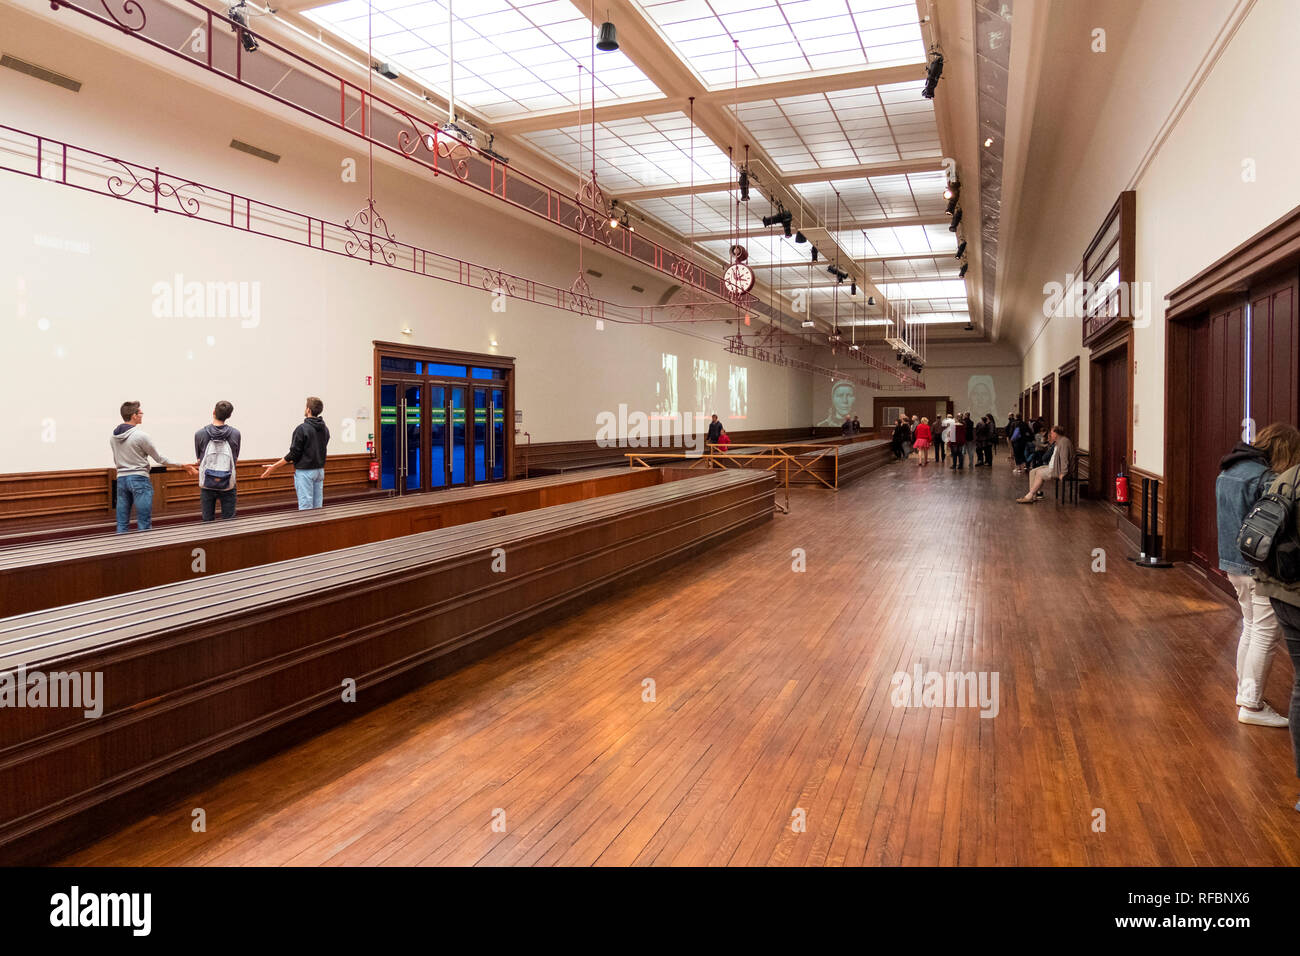 Cherbourg-Octeville, France - August 26, 2018: luggage compartment of the transatlantic ferry terminal at the Cite de la Mer museum. Cherbourg, France - Stock Image